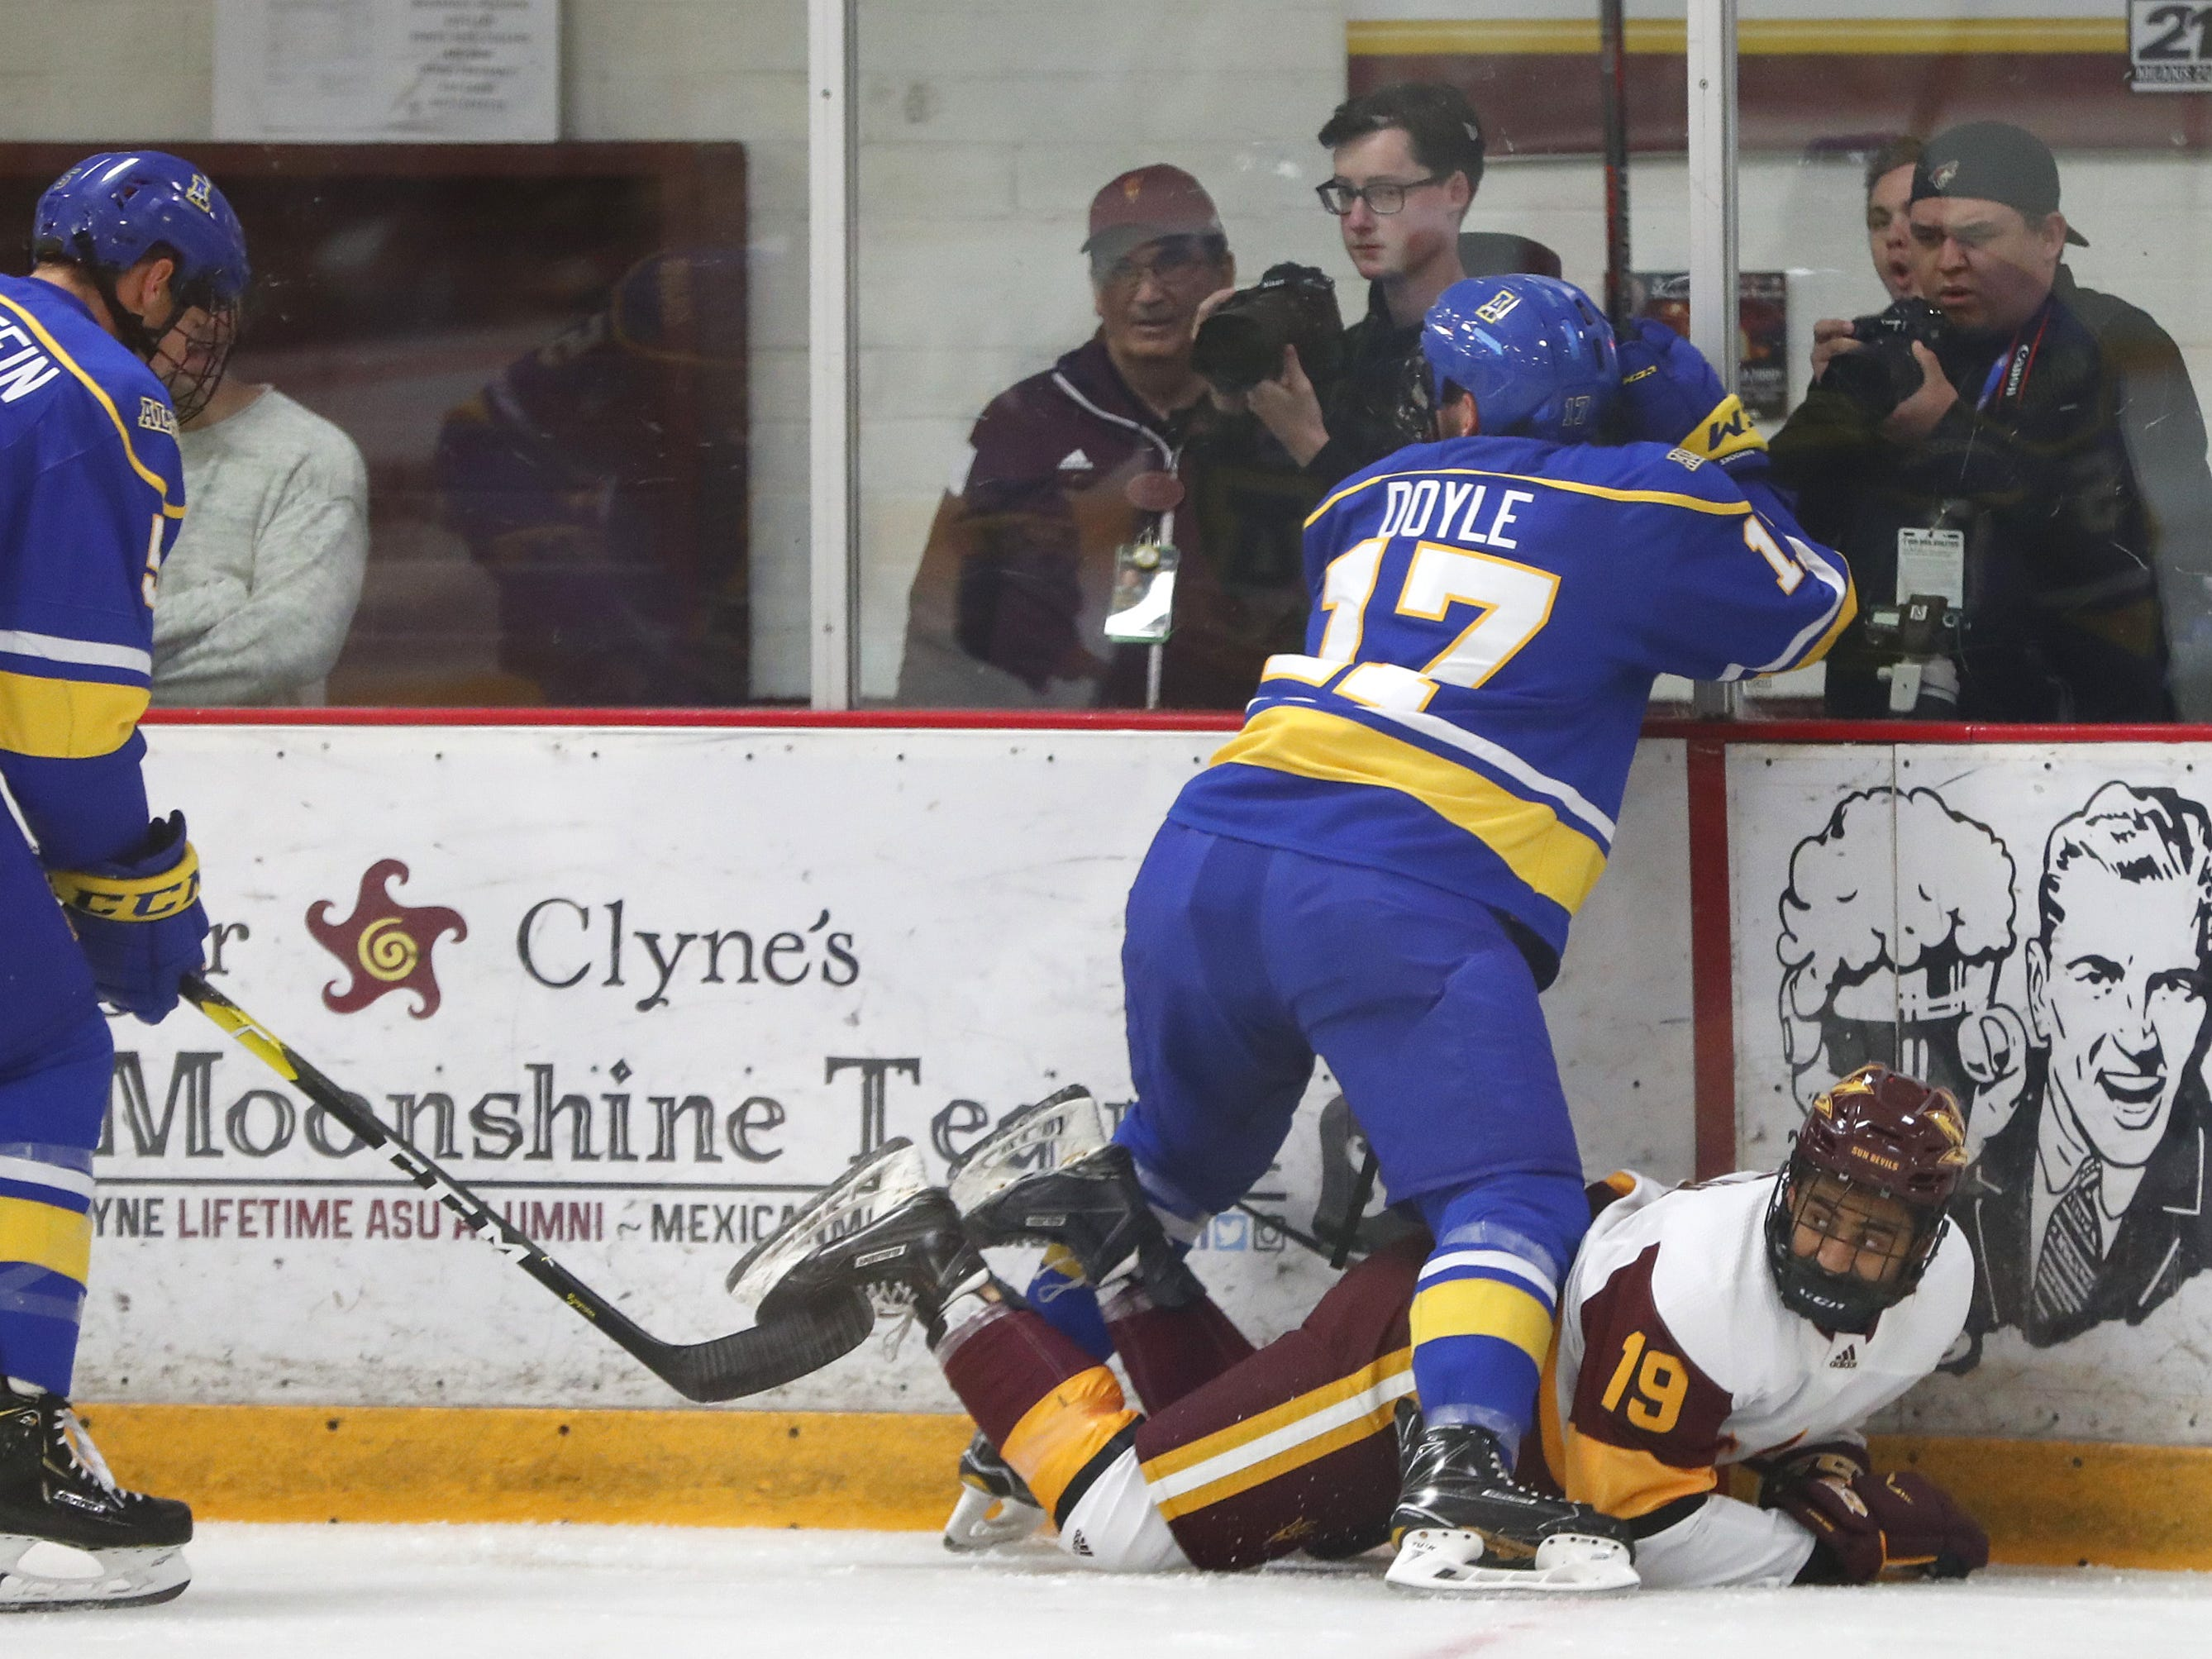 Alaska's Colin Doyle (17) checks ASU's Jordan Sandhu (19) into the boards at Oceanside Ice Arena in Tempe, Ariz. on October 7, 2018.